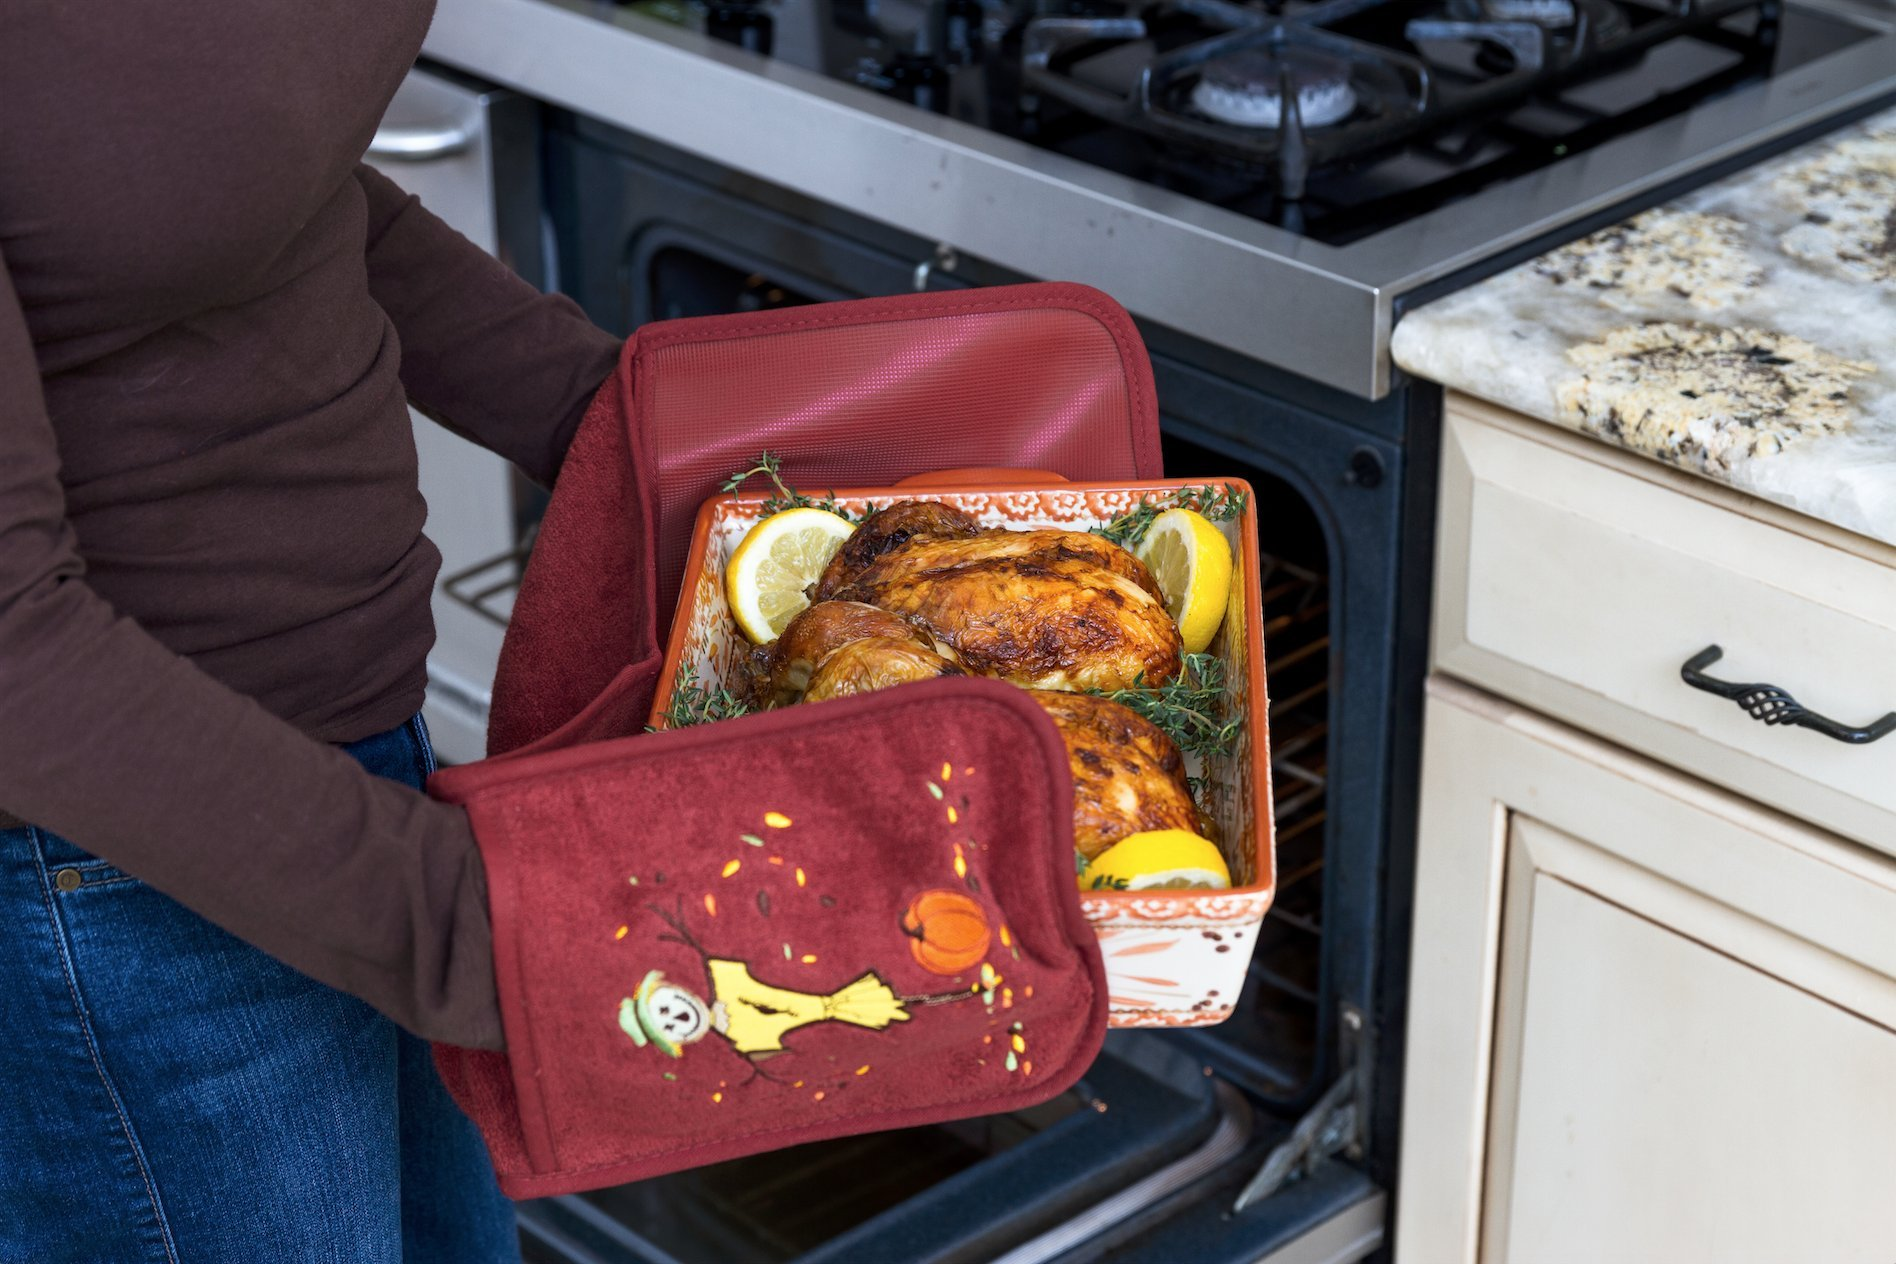 Campanelli's Cooking Buddy - Professional Grade All-In-One Pot Holder, Hand Towel, Lid Grip, Tool Caddy, and Trivet. Heat Resistant up to 500ºF! As Seen On QVC. (Limited Edition: Harvest Brown) by Campanelli Products (Image #3)